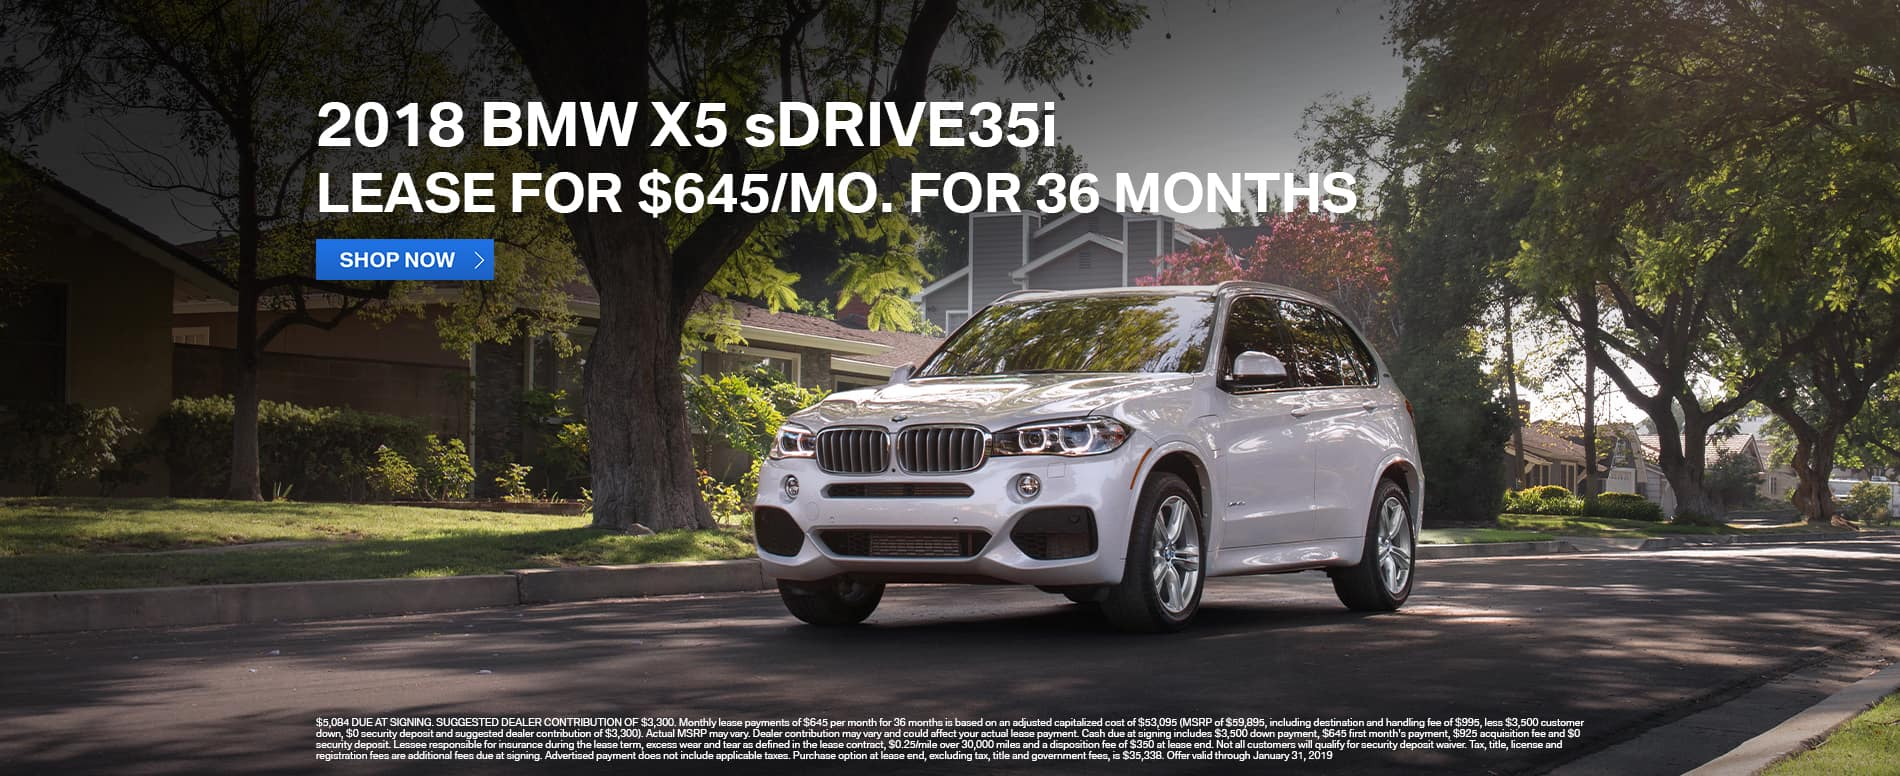 lease-2018-X5-sdrive35i-for-659-per-month-beaumont